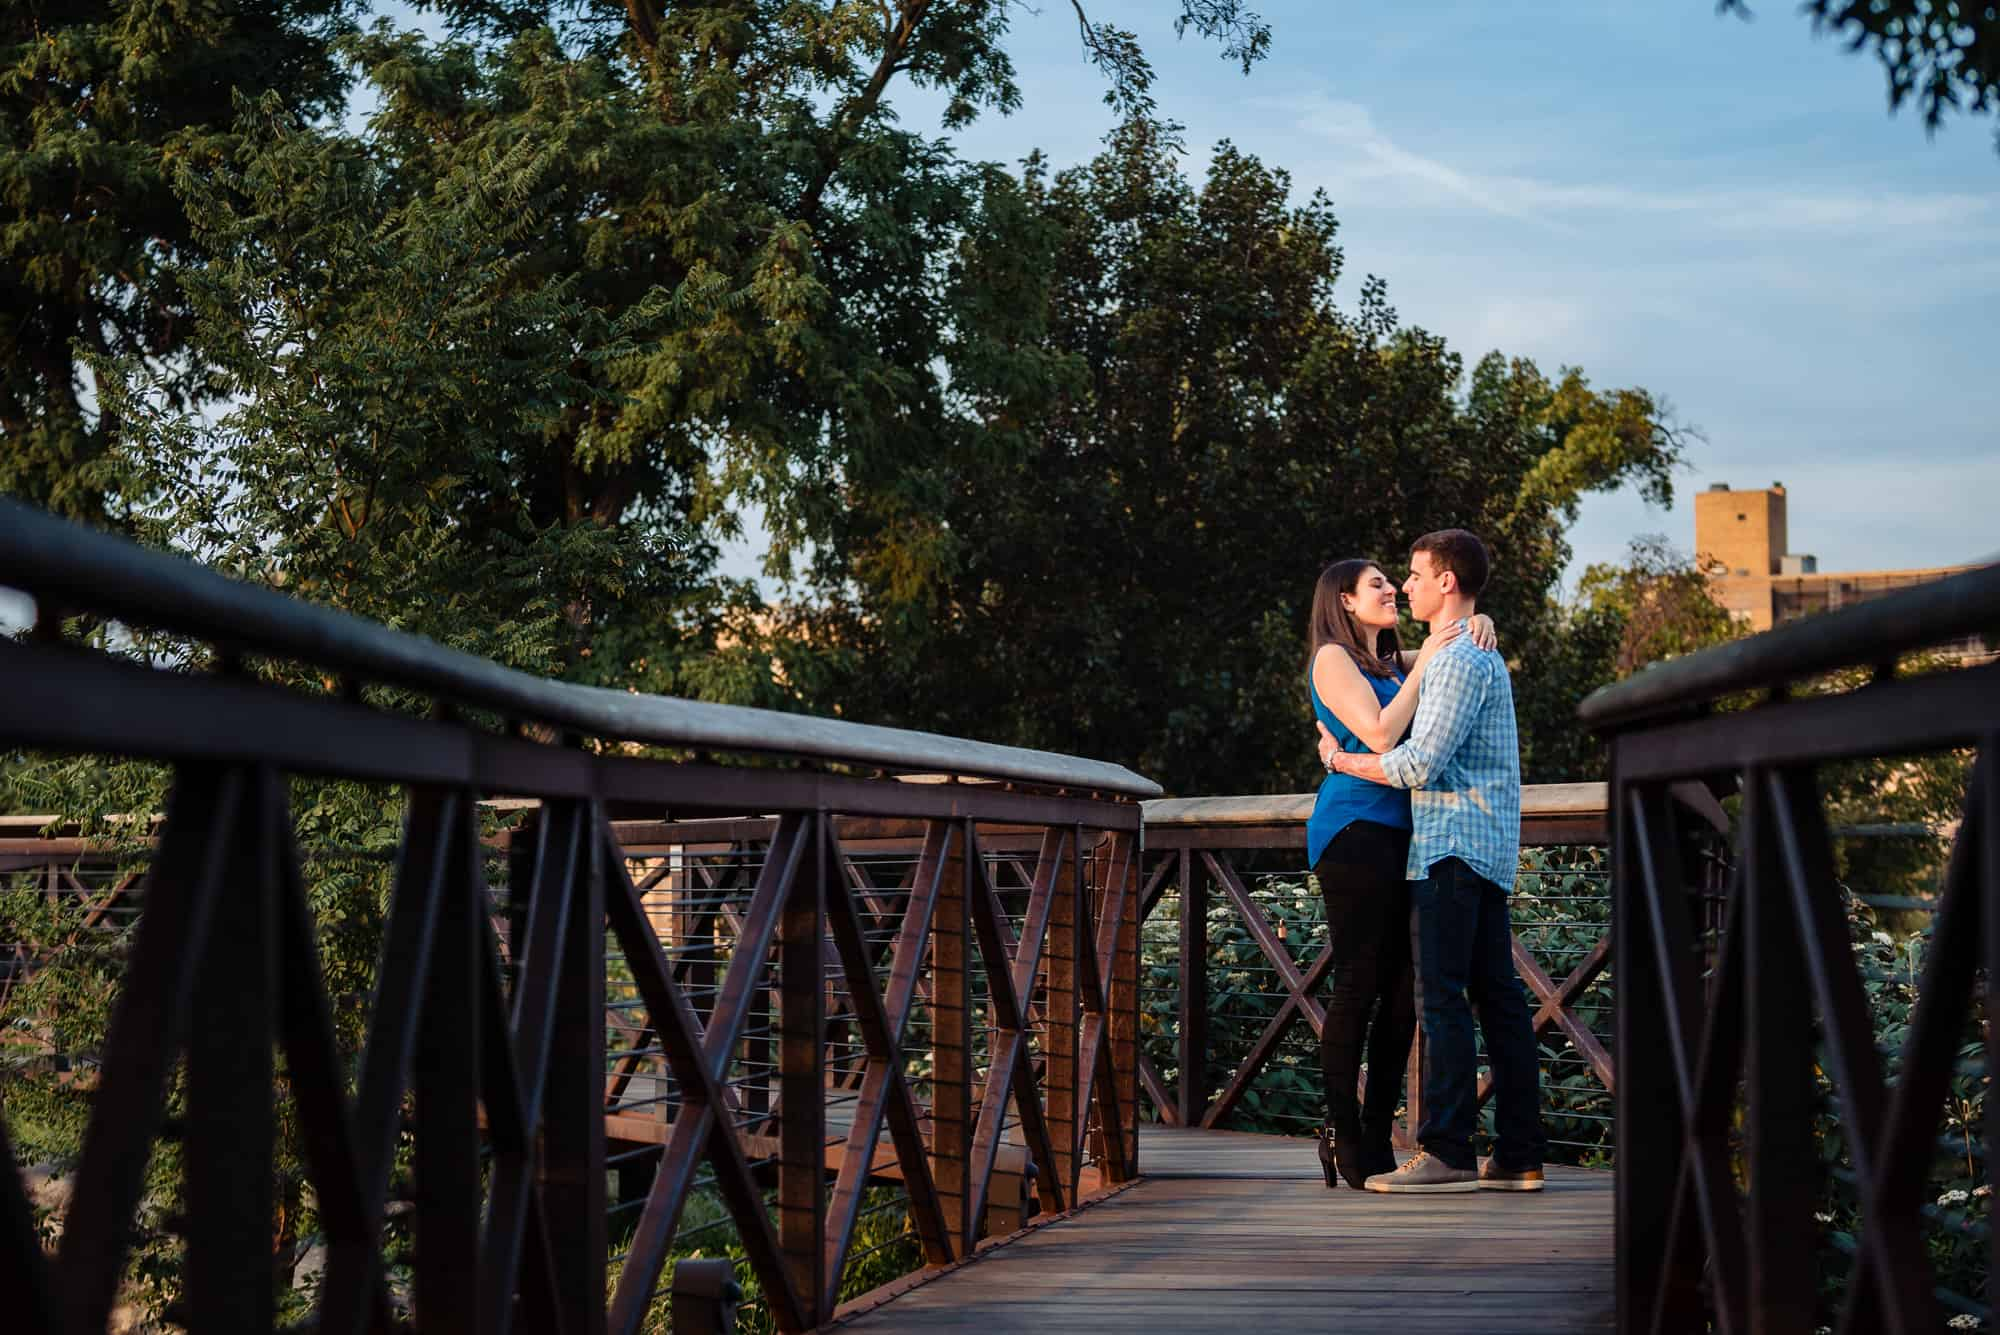 enagagement shoot, couple embracing each other on a bridge